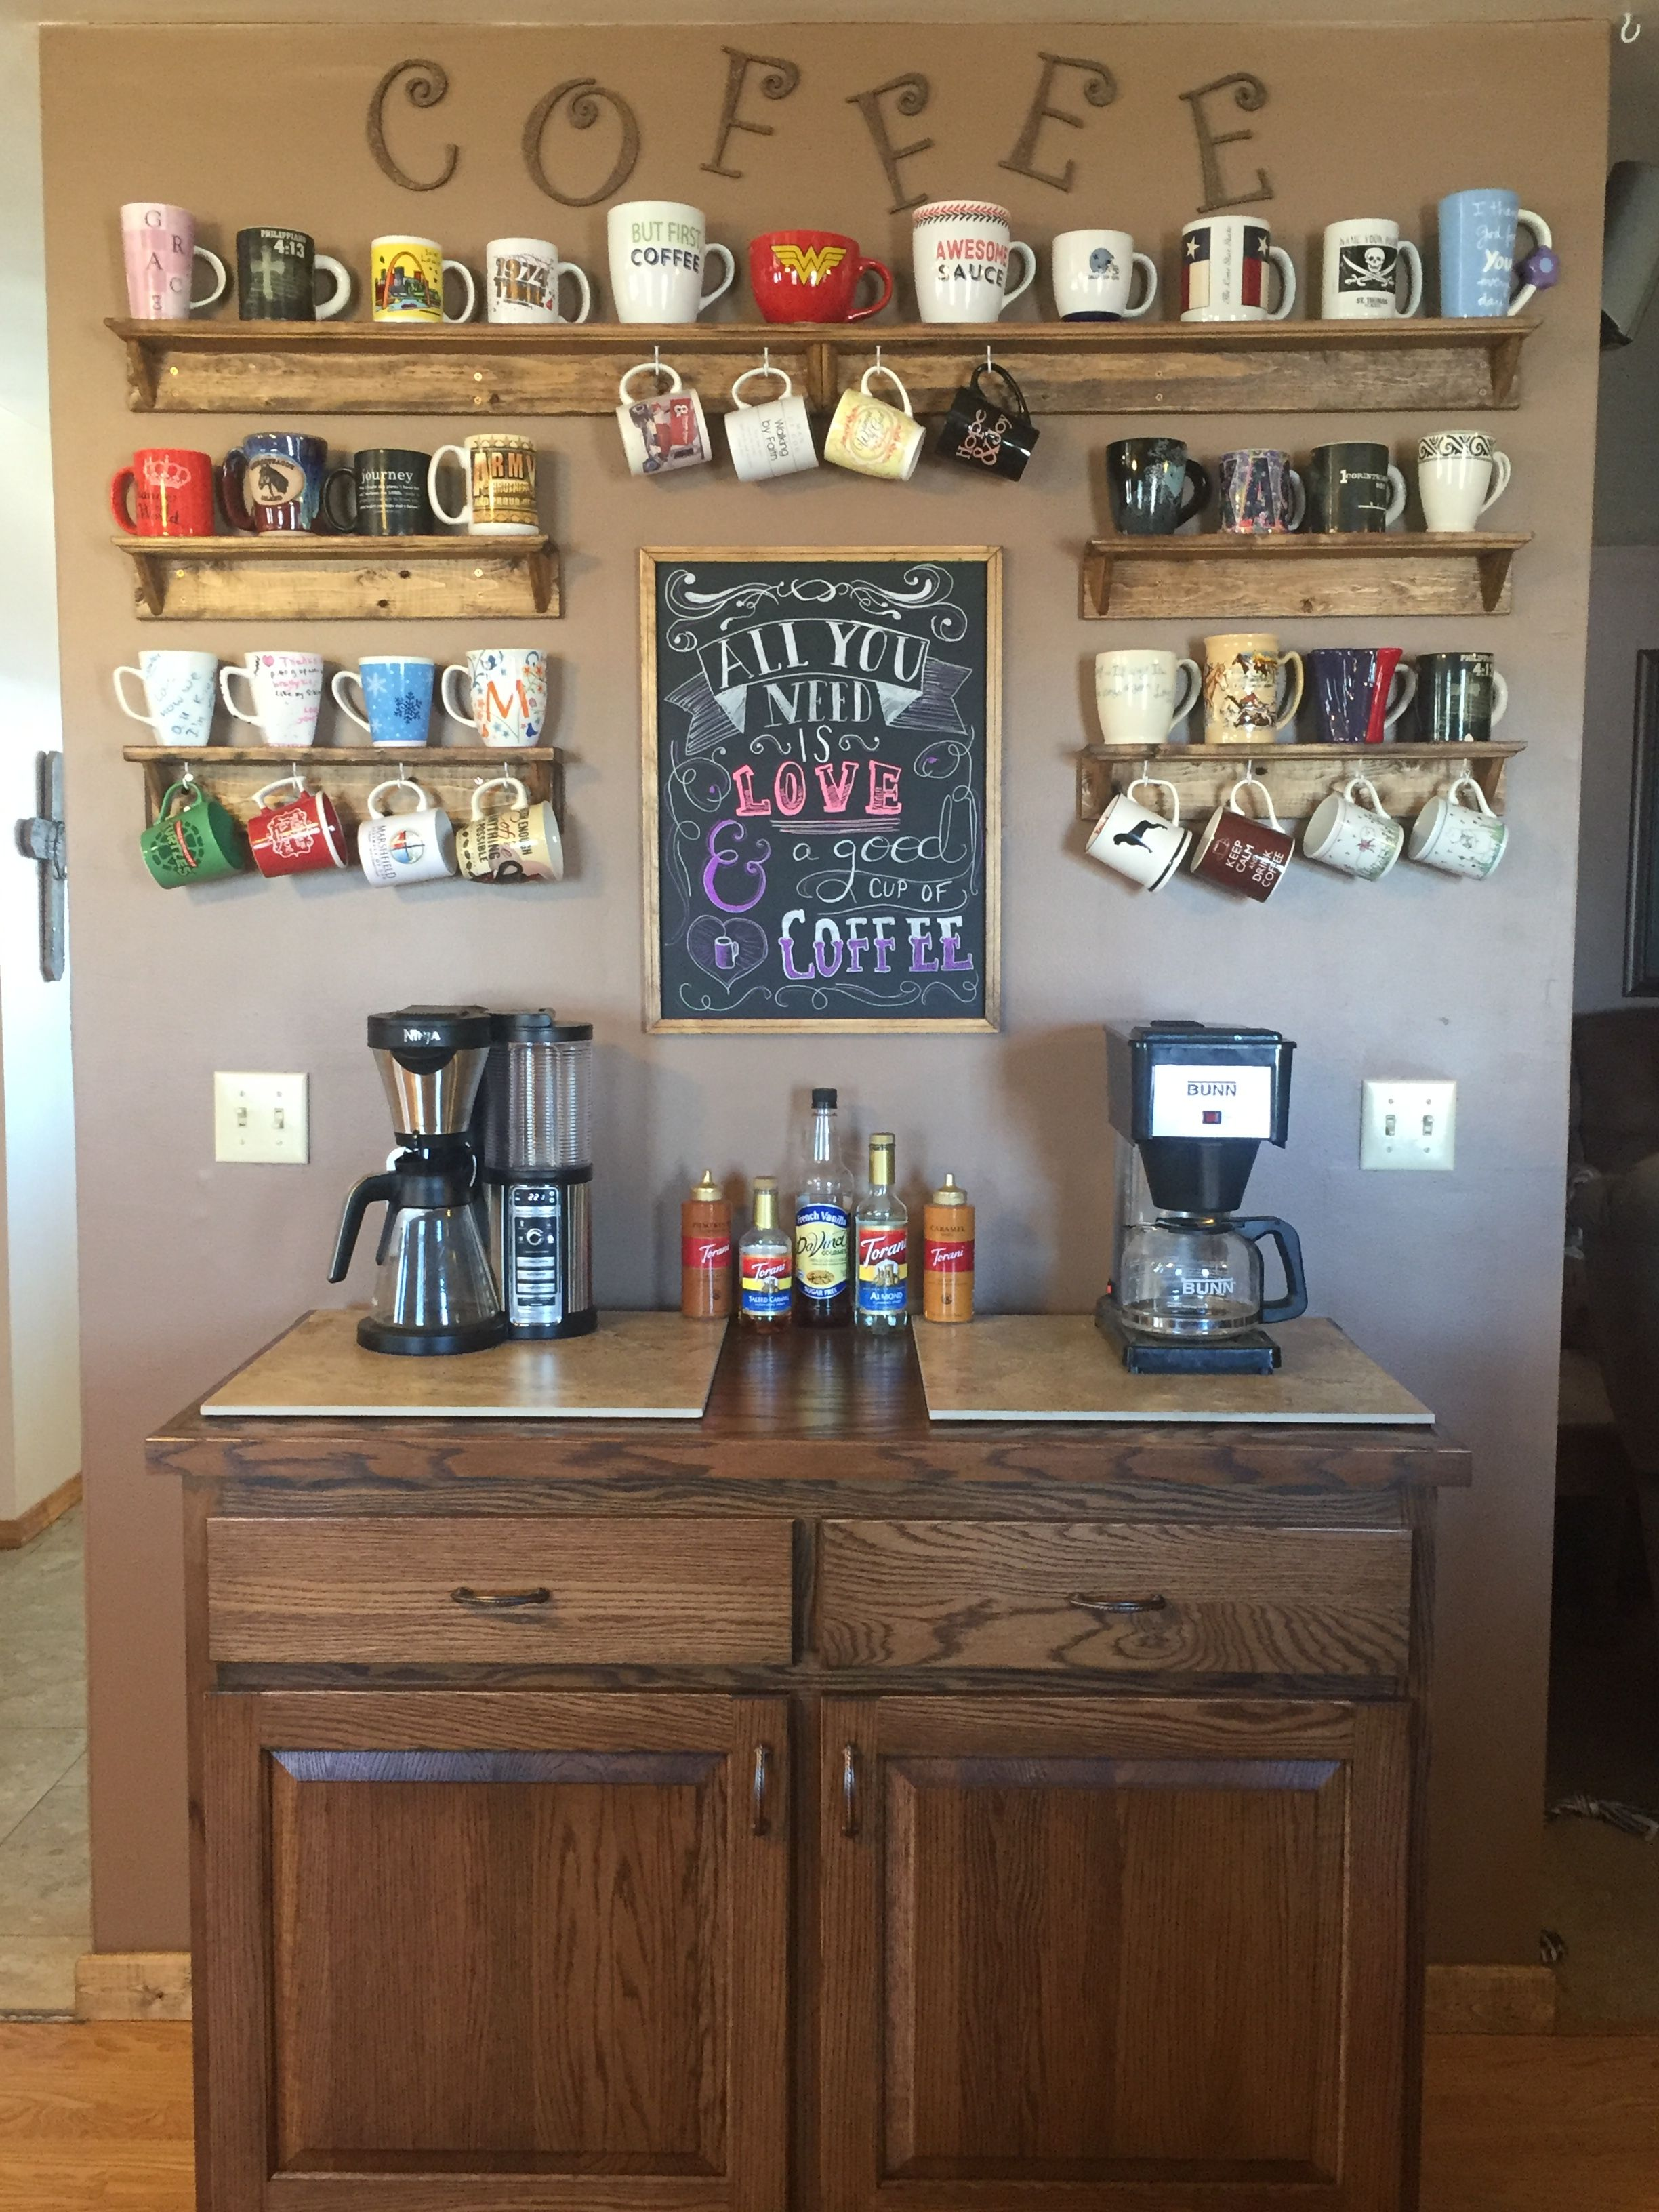 Coffee bar ideas for kitchen lures and lace for Kitchen coffee bar ideas